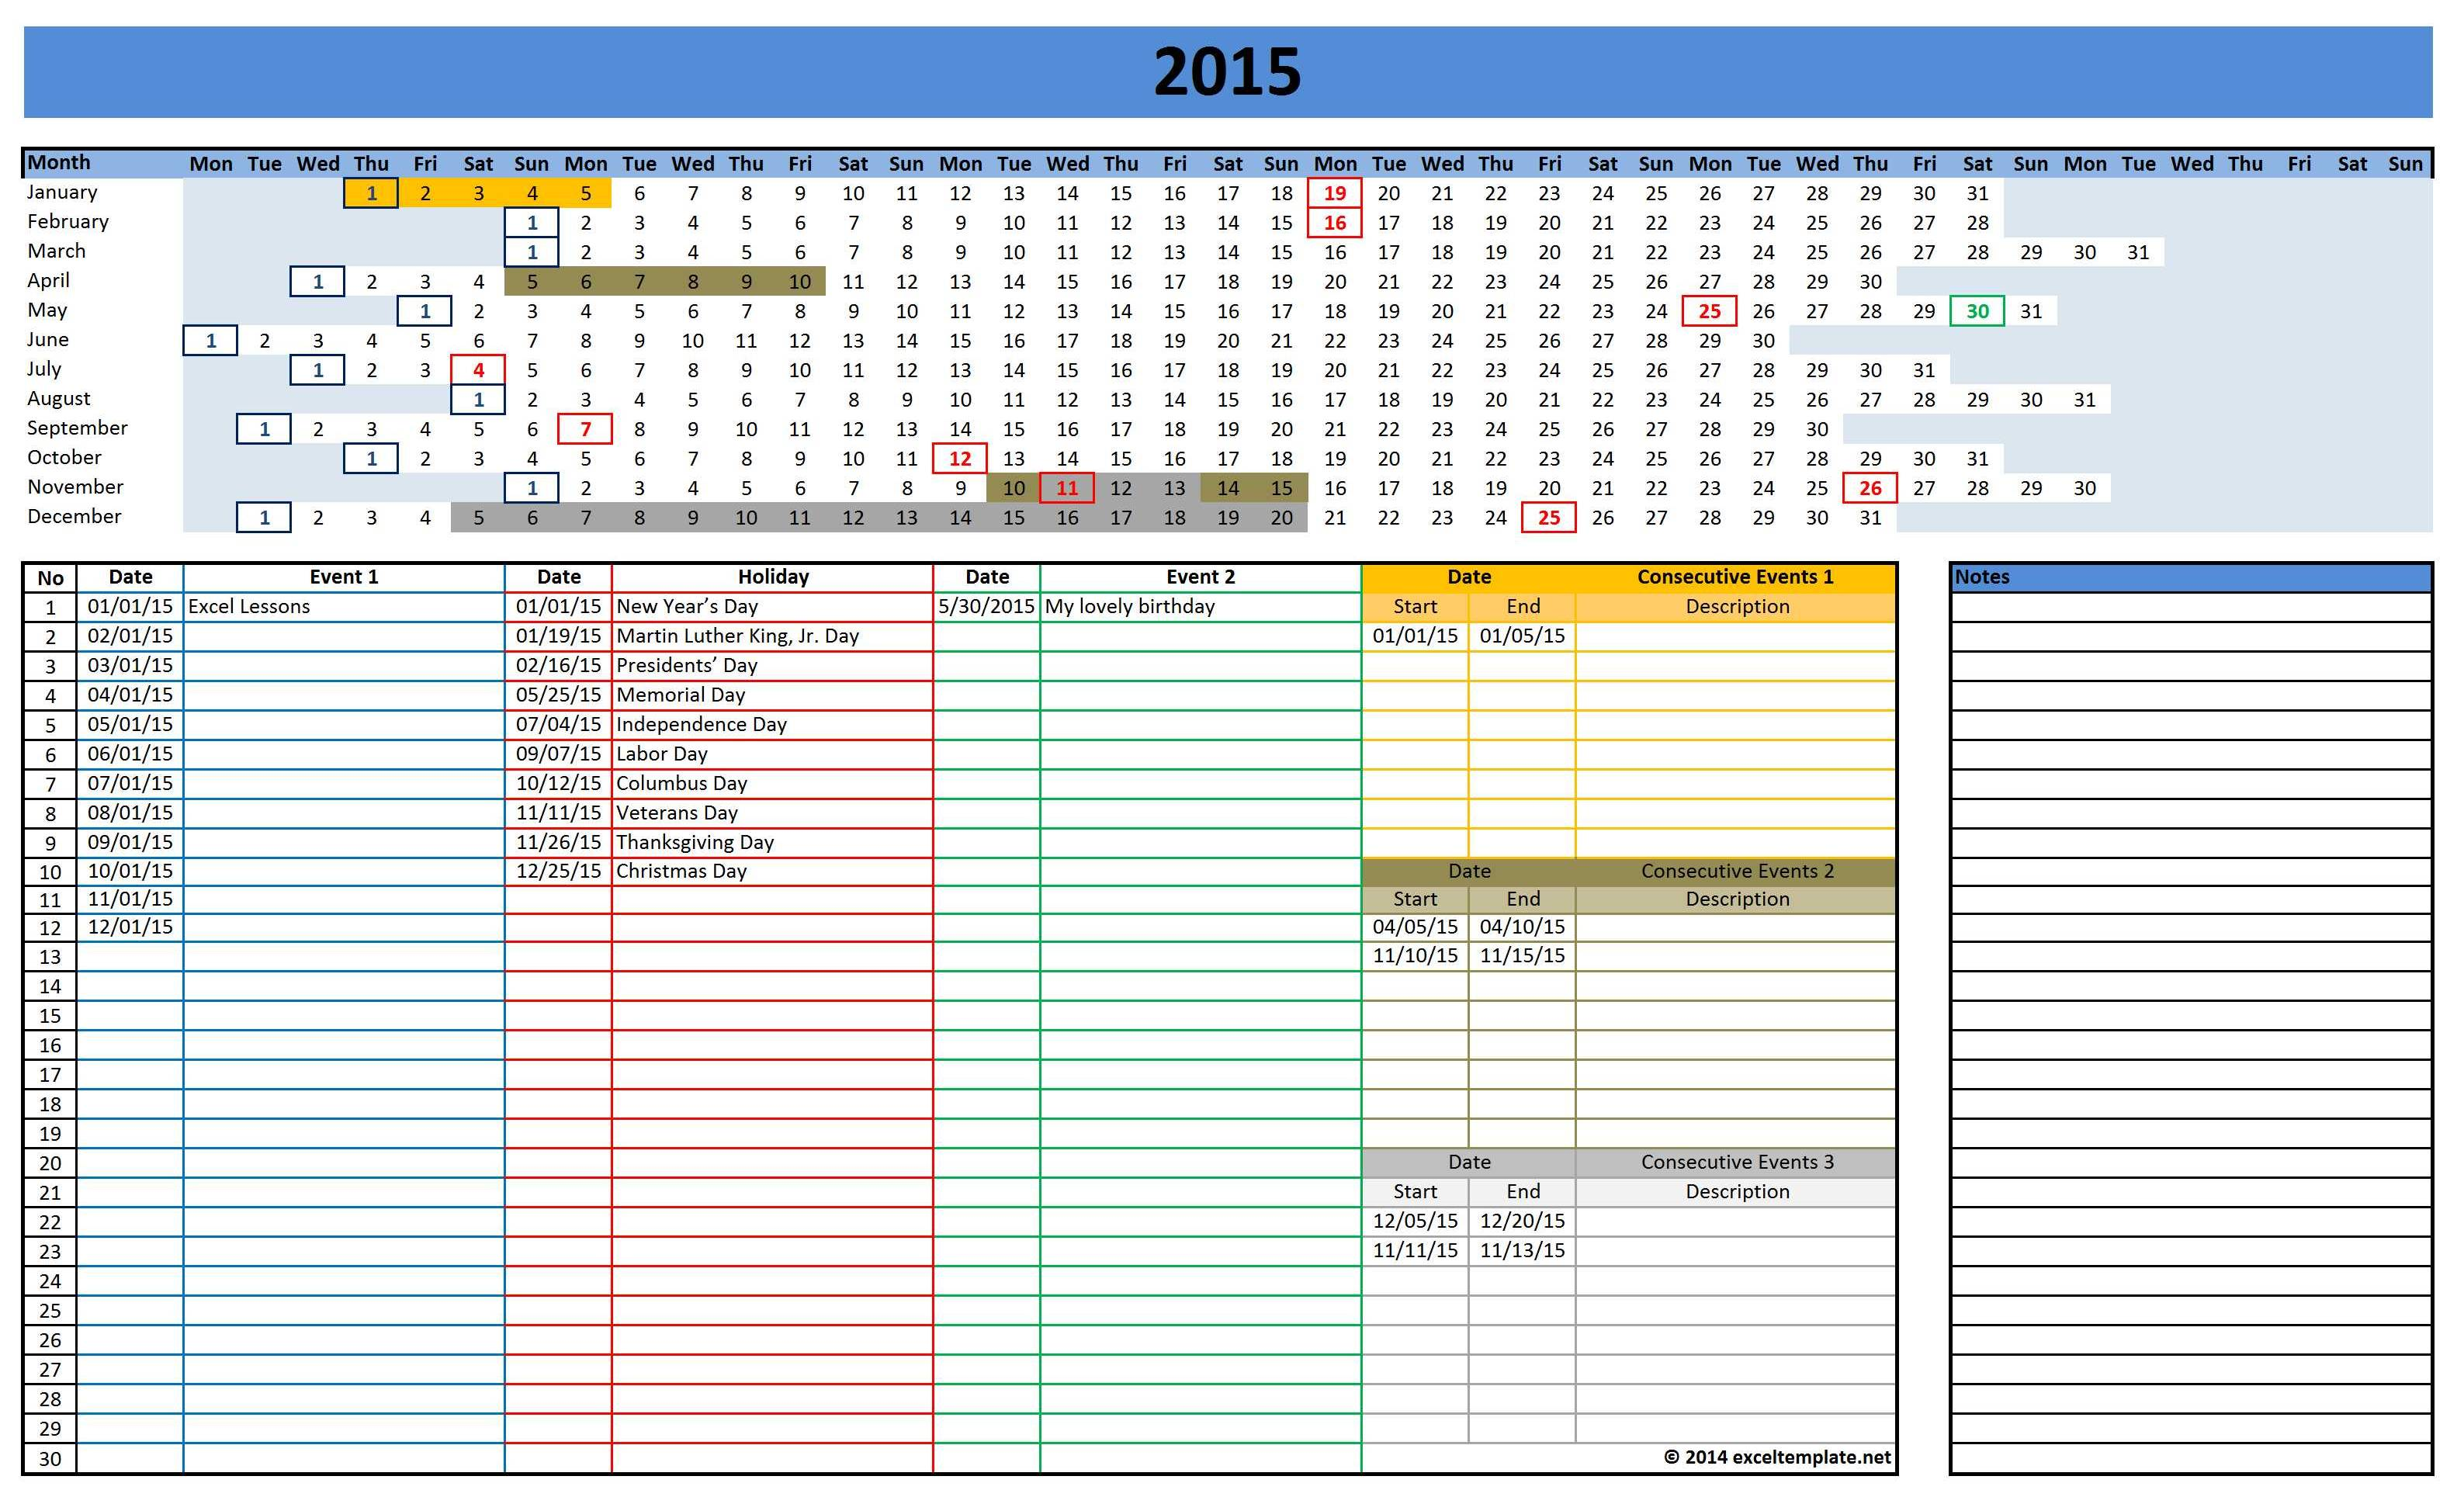 Calendar Templates Xls : Calendars excel templates